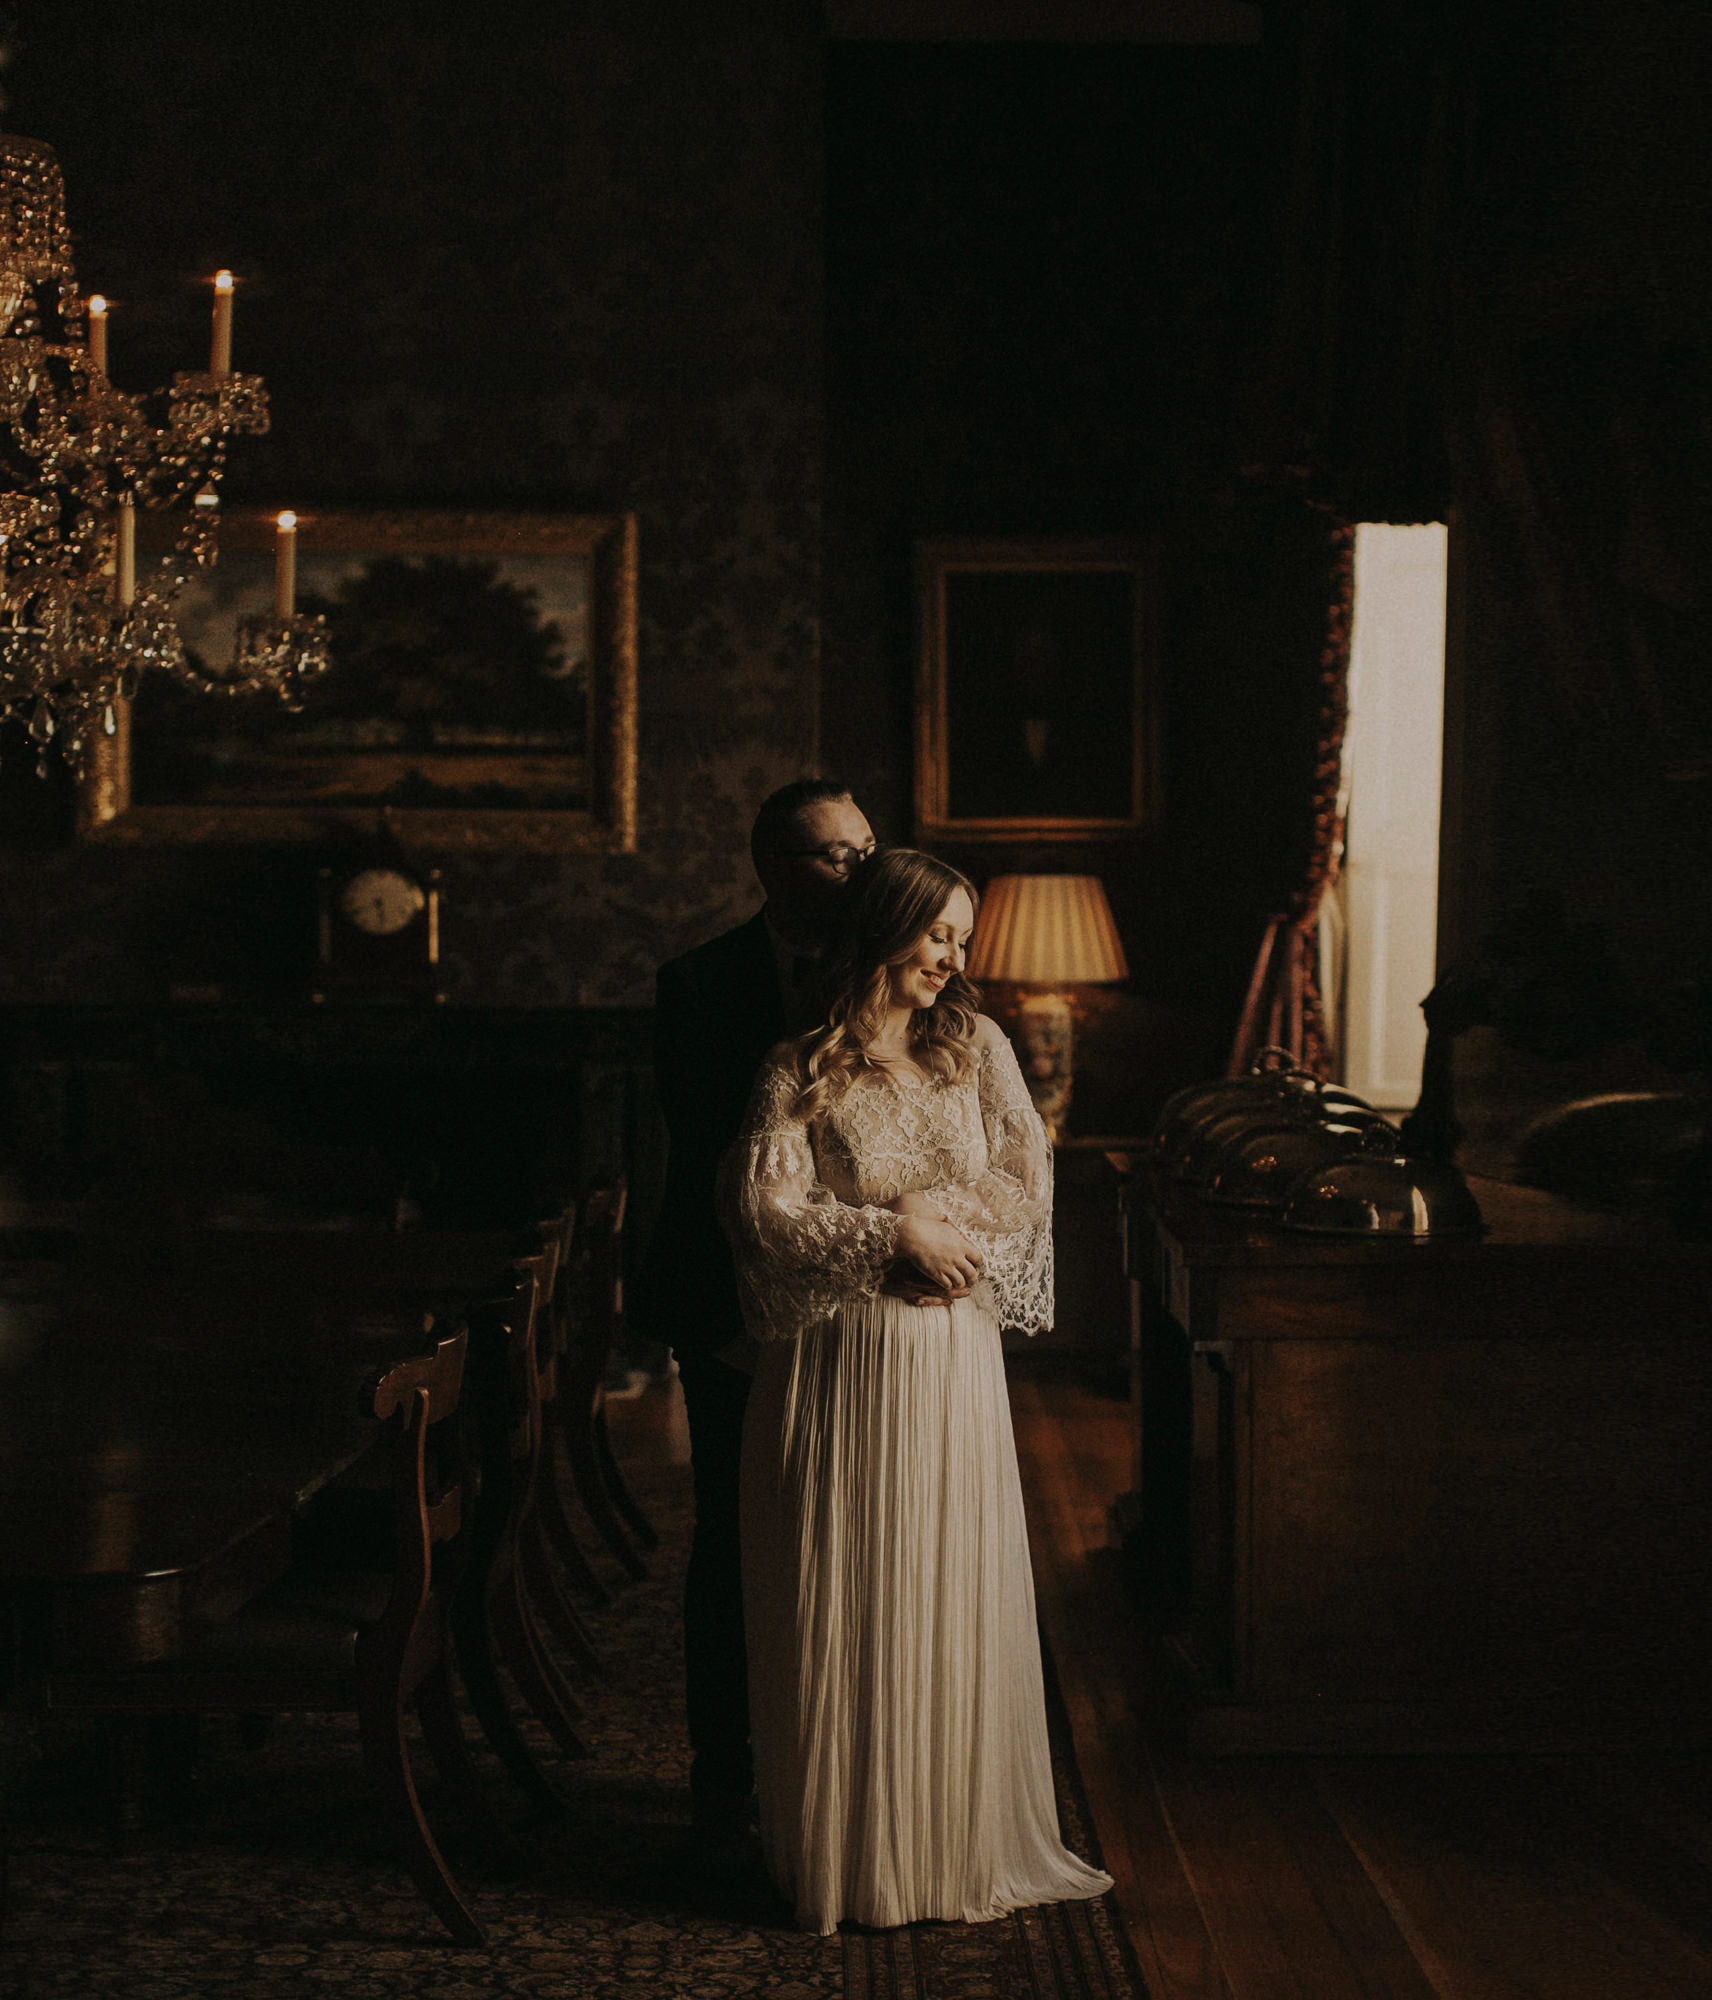 Bride and groom embrace in classically decorated room, by Dan O' Day